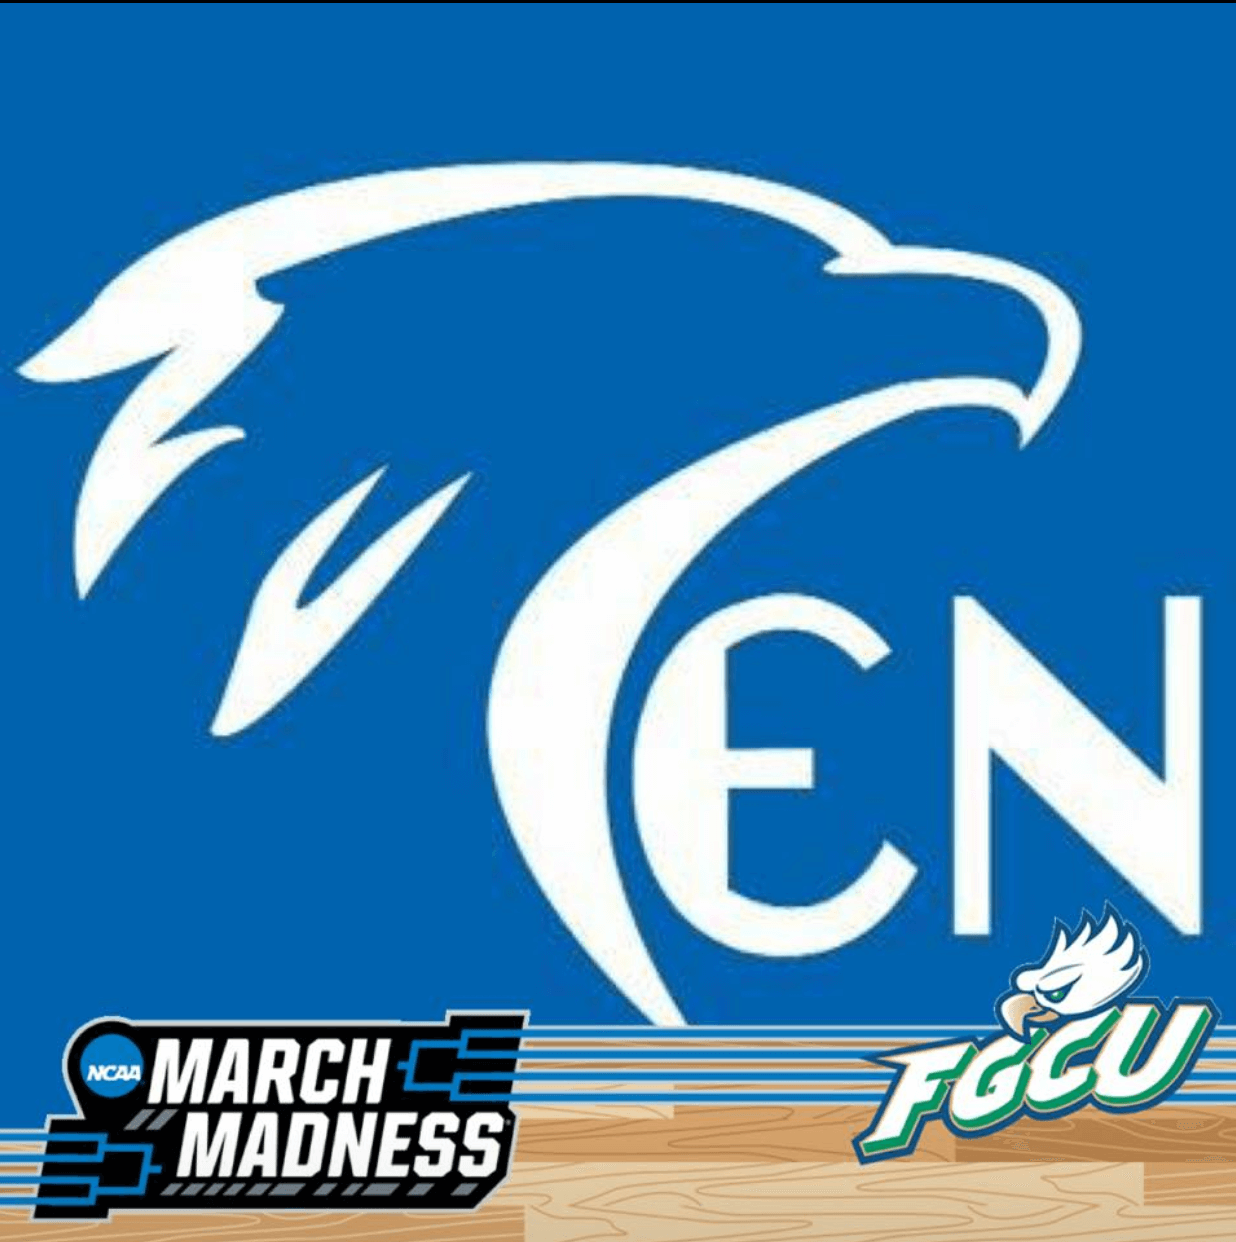 Share your FGCU pride with Facebook's March Madness profile frames